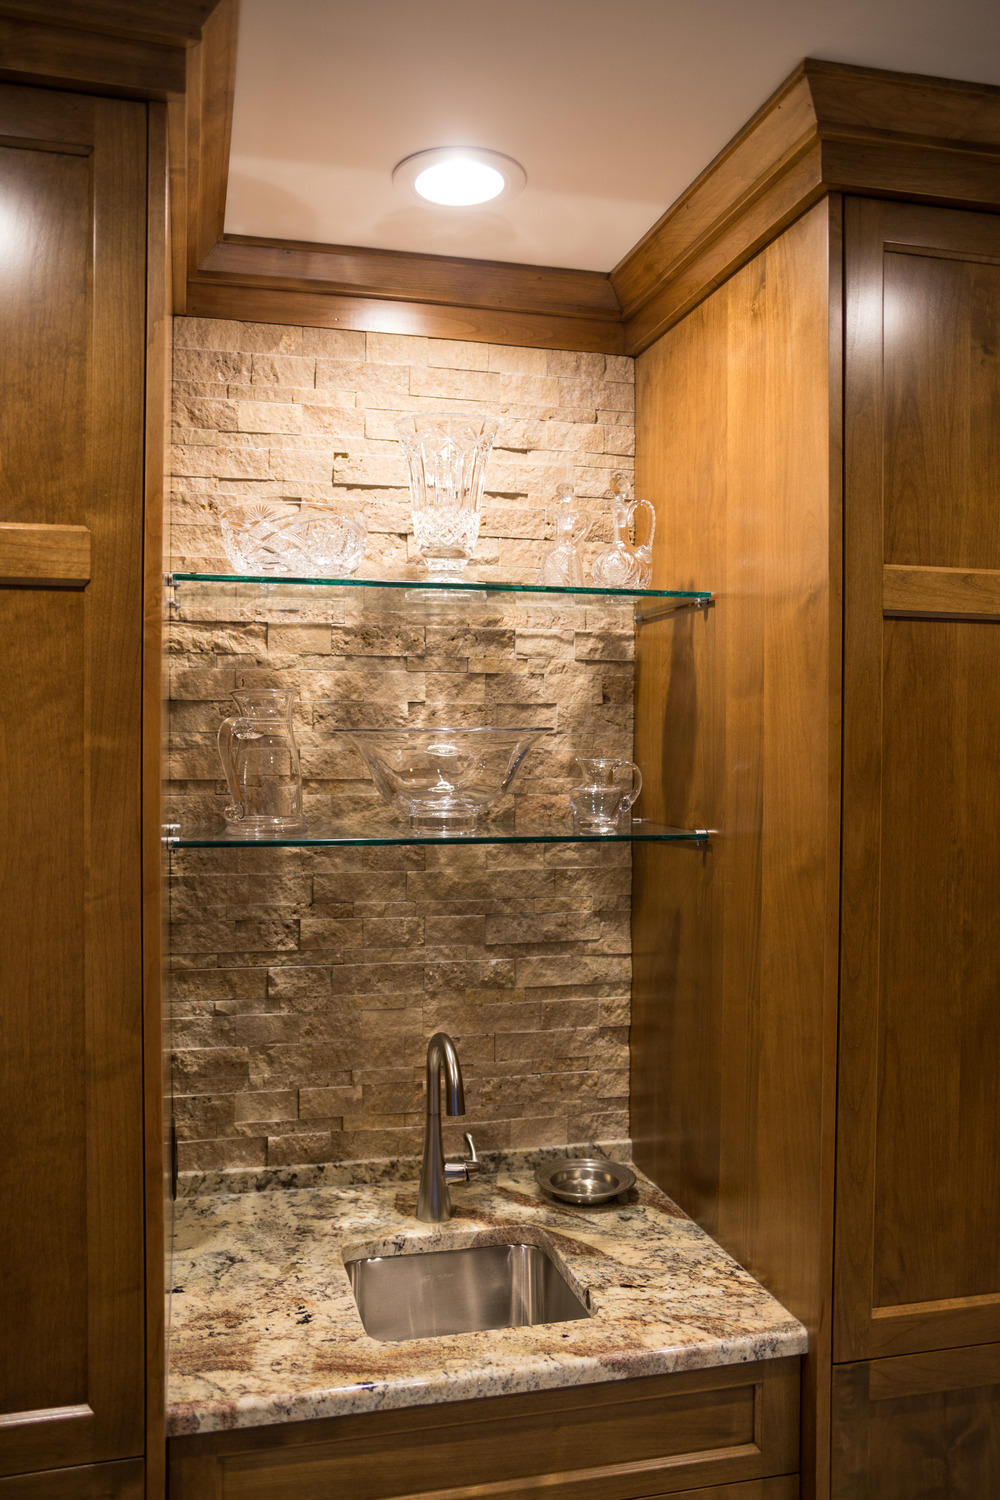 Choice Wood Served As The General Contractor And Completed The  Construction, Including The Custom Cabinets. Jeannie Blenkush Worked With  The Client To ...